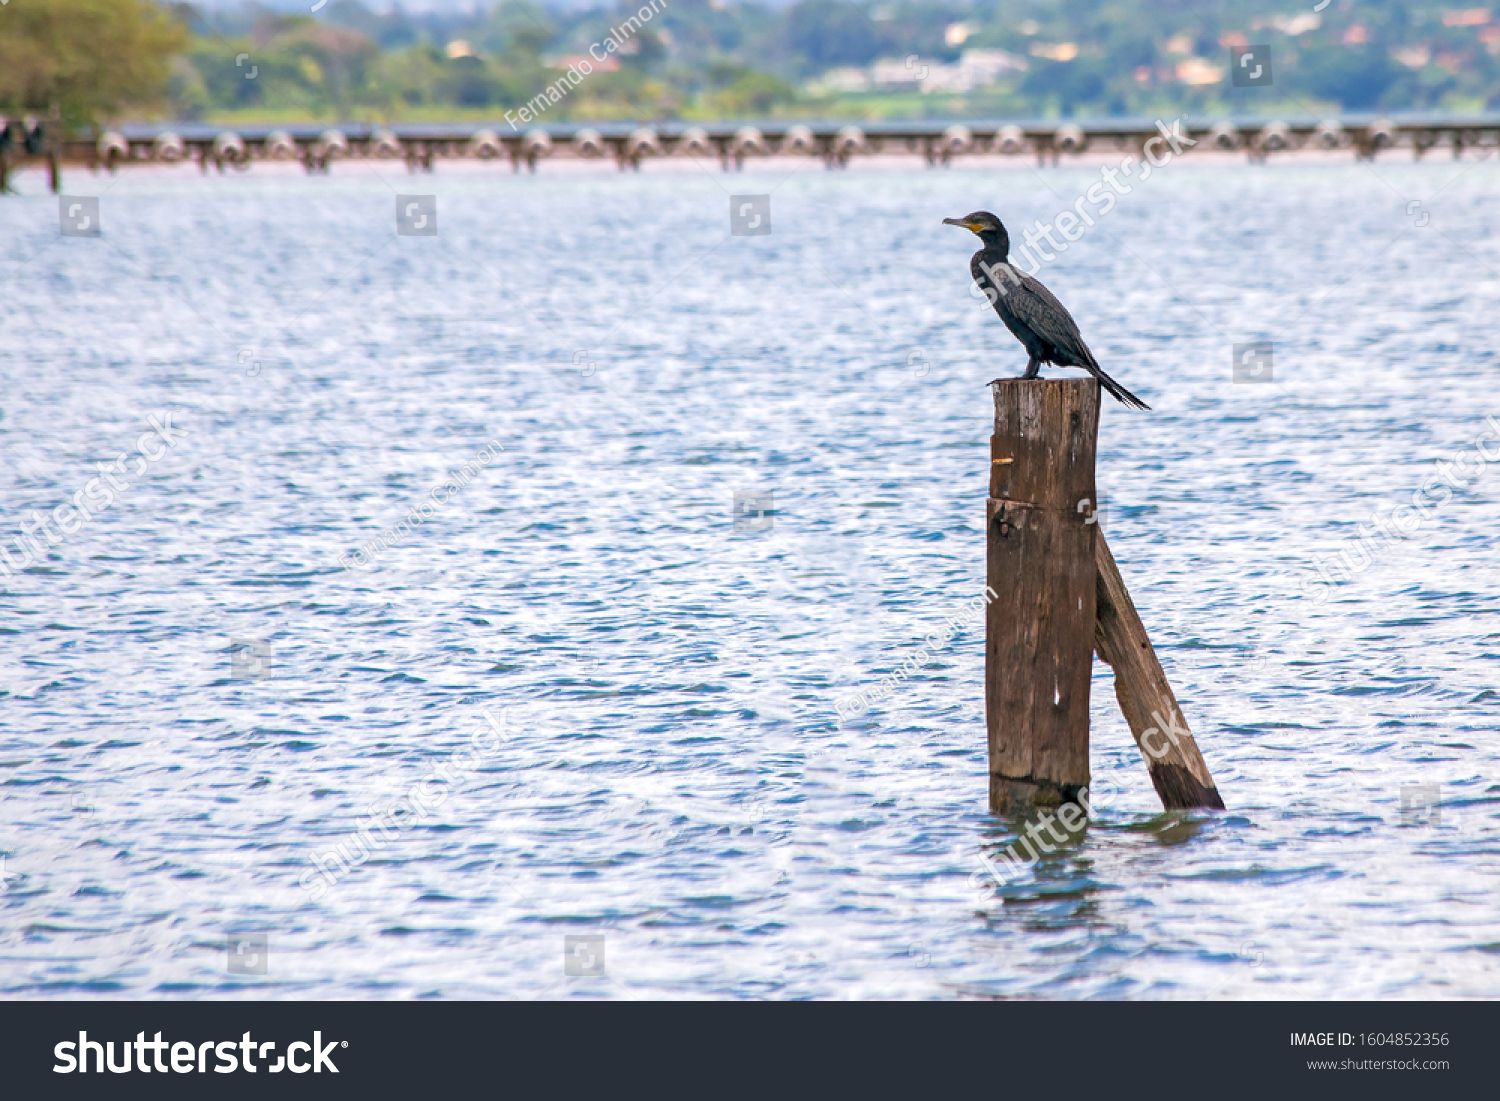 Neotropic Cormorant or Olivaceous Cormorant also know Bigua is an aquatic bird found on Parano¨¢ Lake in Brasilia, Brazil. Species Nannopterum brasilianus. Animal wildlife. Cerrado. Birdwatcher. #Ad , #SPONSORED, #bird#aquatic#Lake#Parano